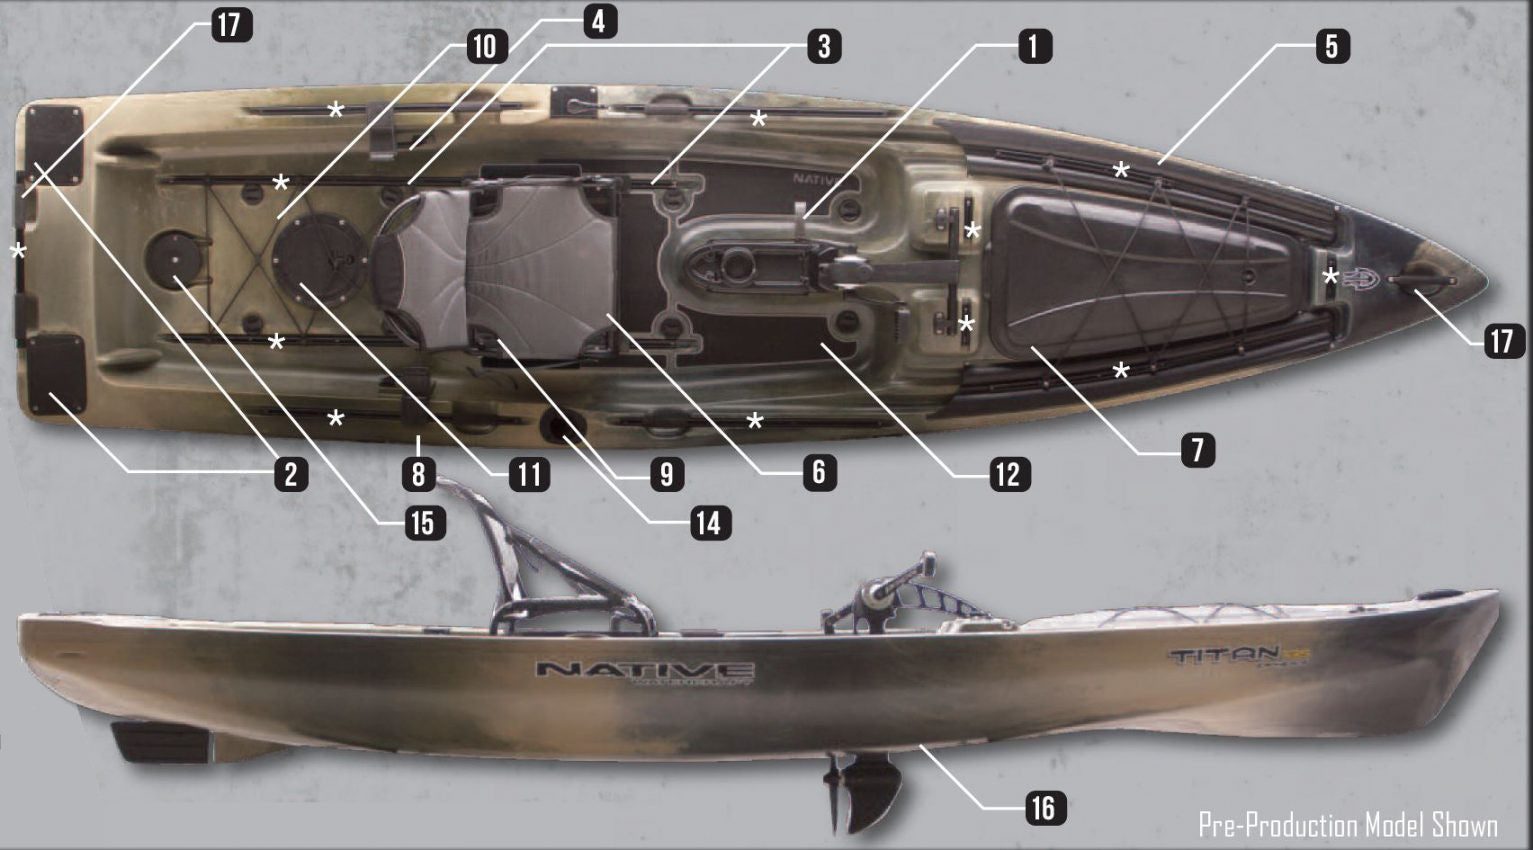 Native Titan Fishing Kayak